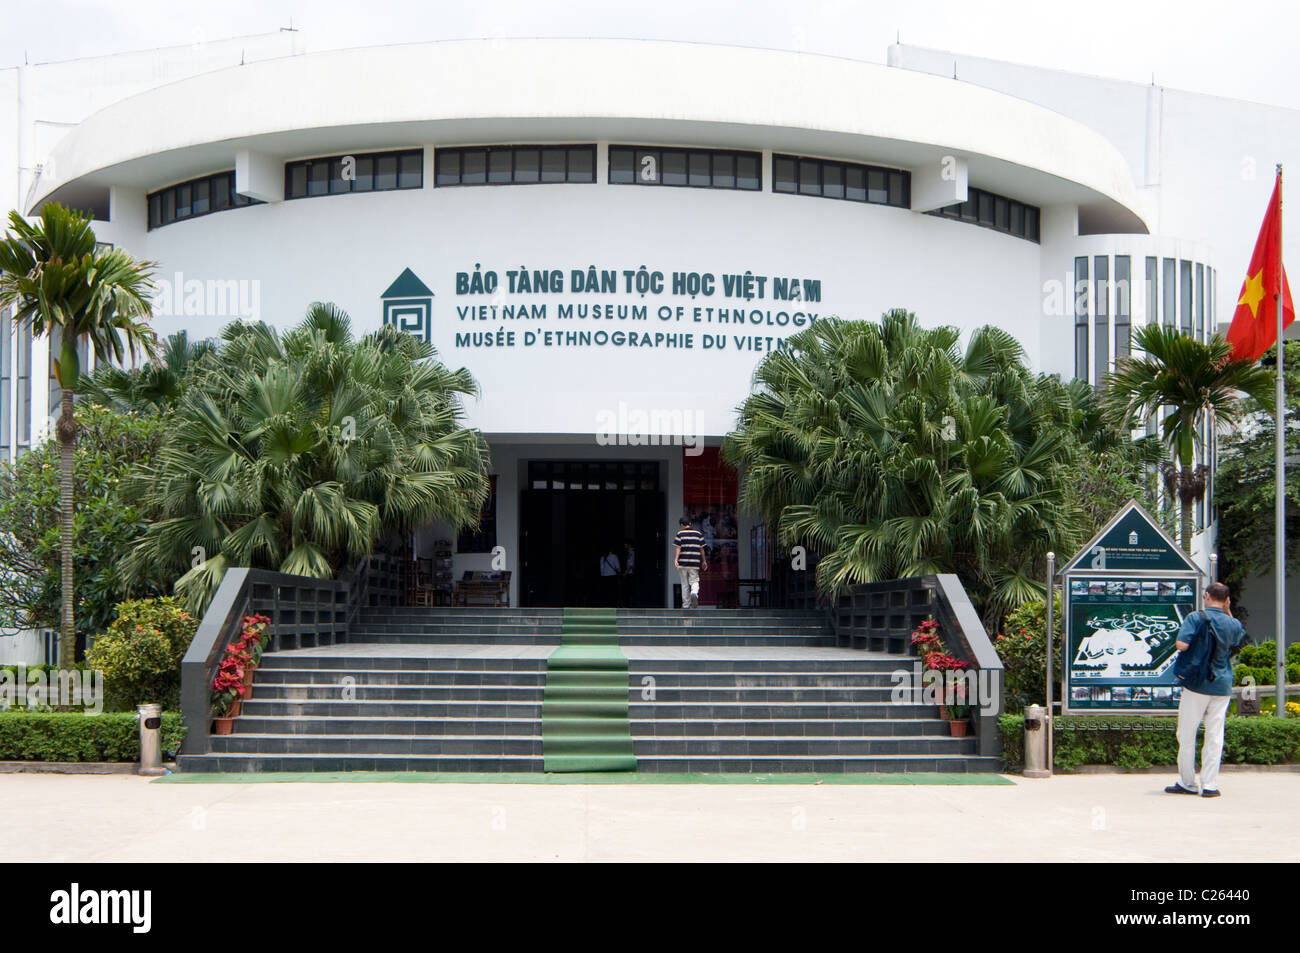 Entrance to the Vietnam Museum of Ethnology, Nguyen Van Huyen St, Cau Giay, Hanoi, Vietnam - Stock Image